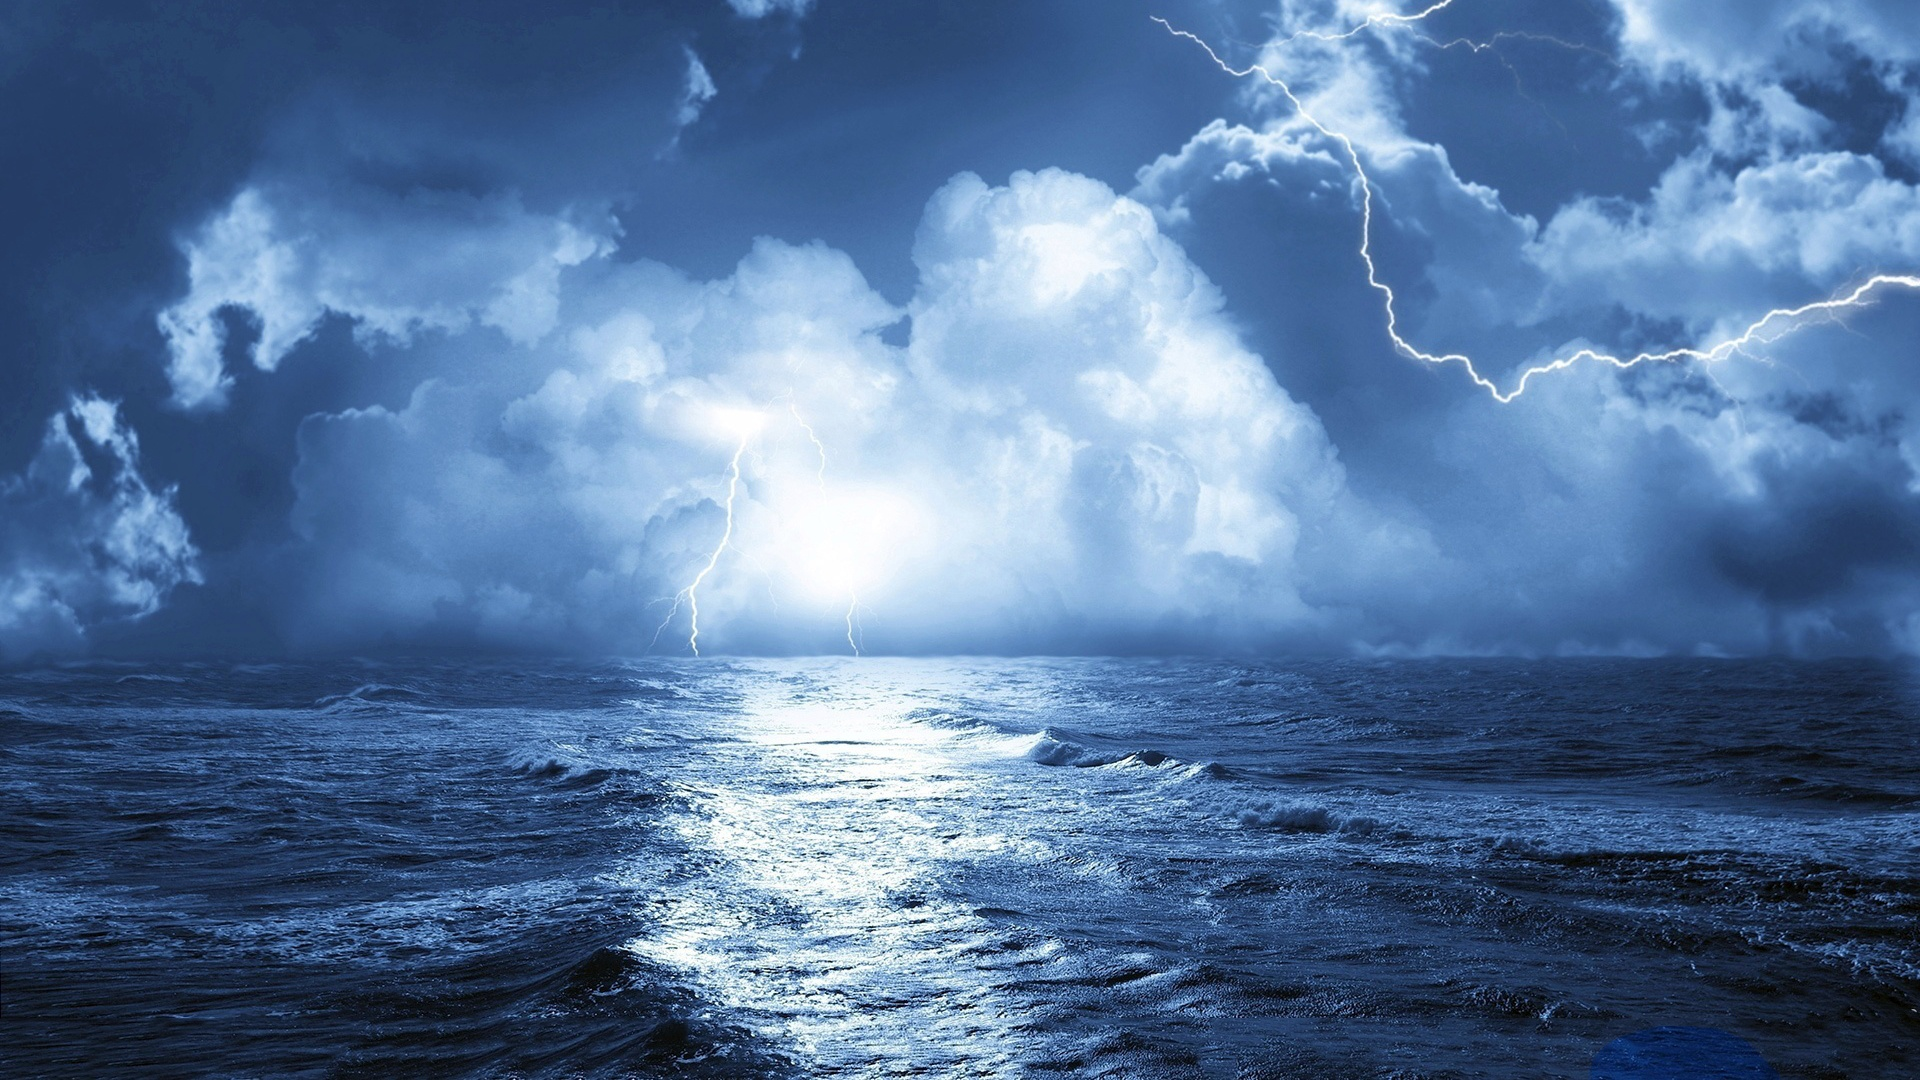 Description: The Wallpaper above is Storm over sea Wallpaper in Resolution 1920x1080. Choose your Resolution and Download Storm over sea Wallpaper